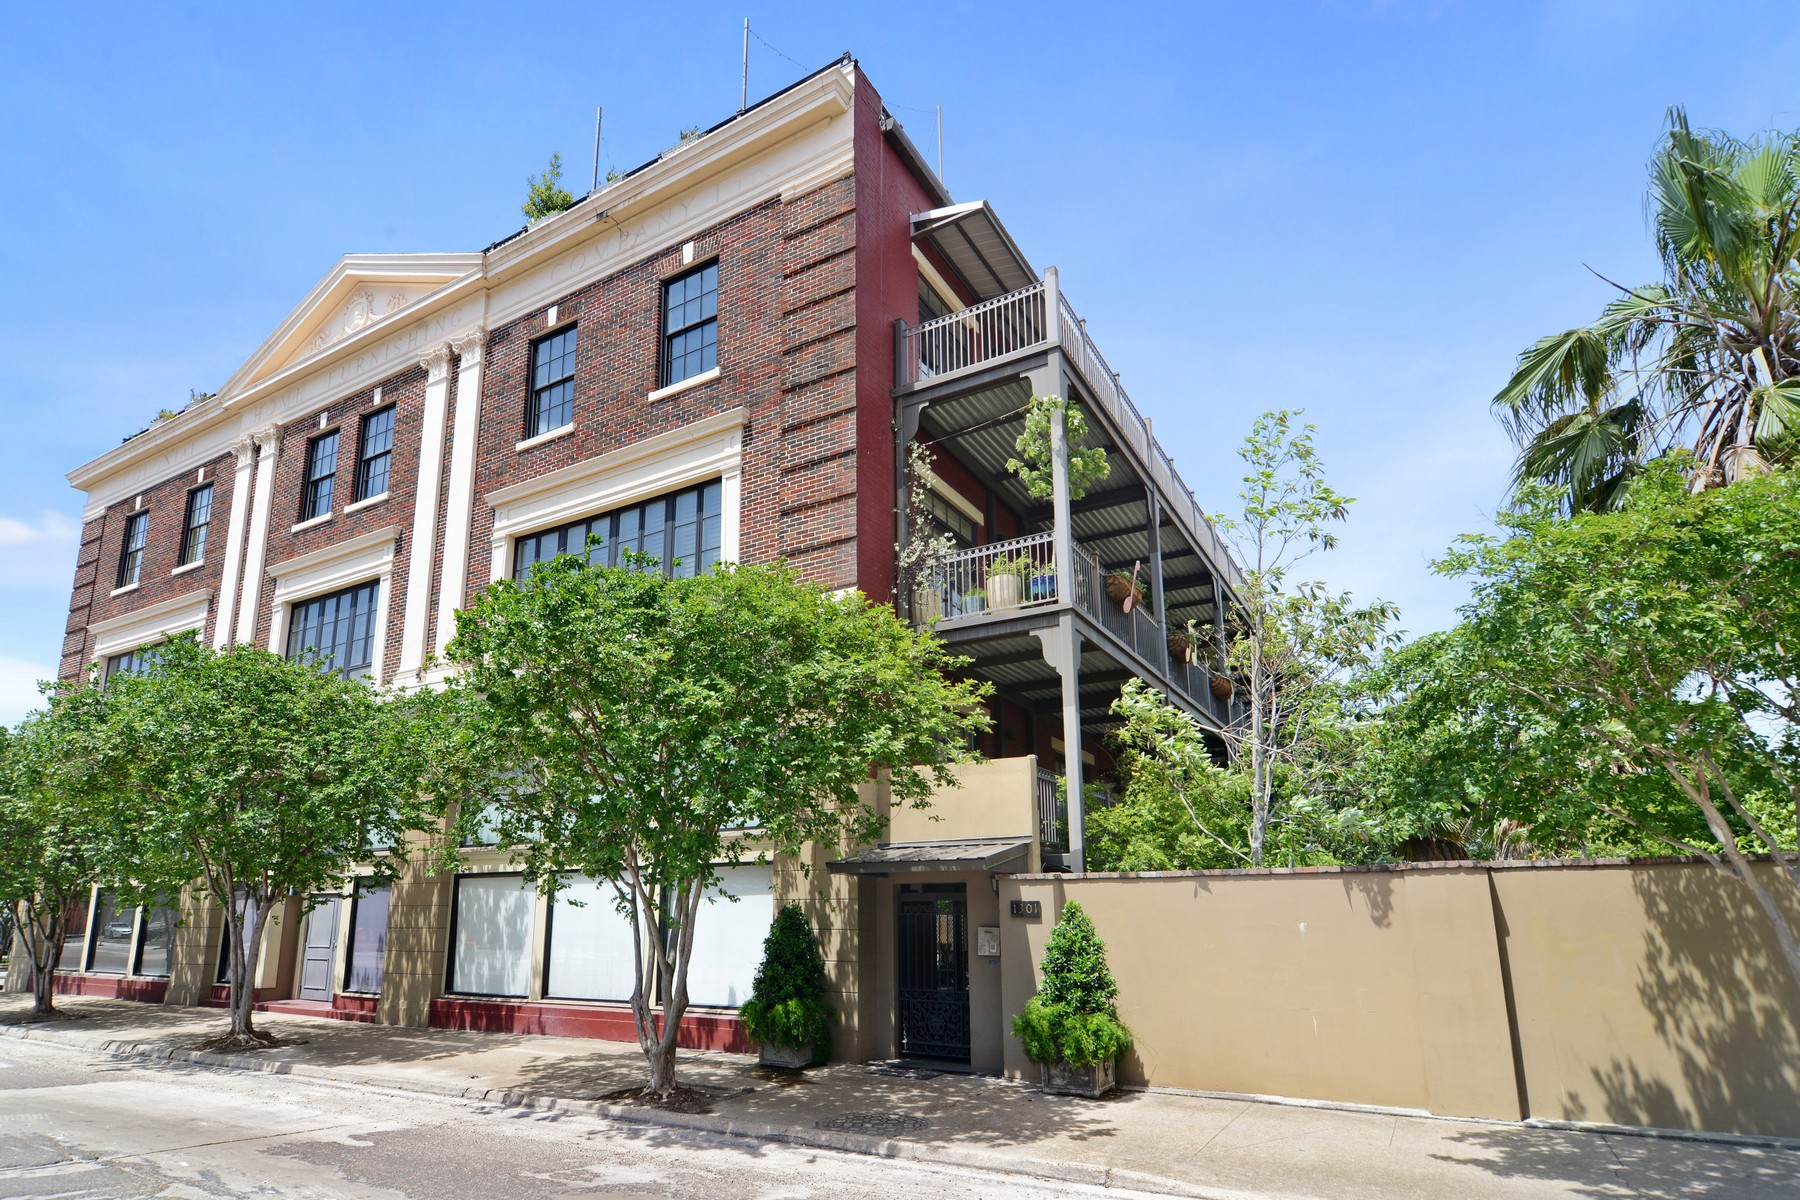 Condominium for Sale at 1301 N Rampart St 1301 N Rampart St Unit 502 New Orleans, Louisiana, 70116 United States